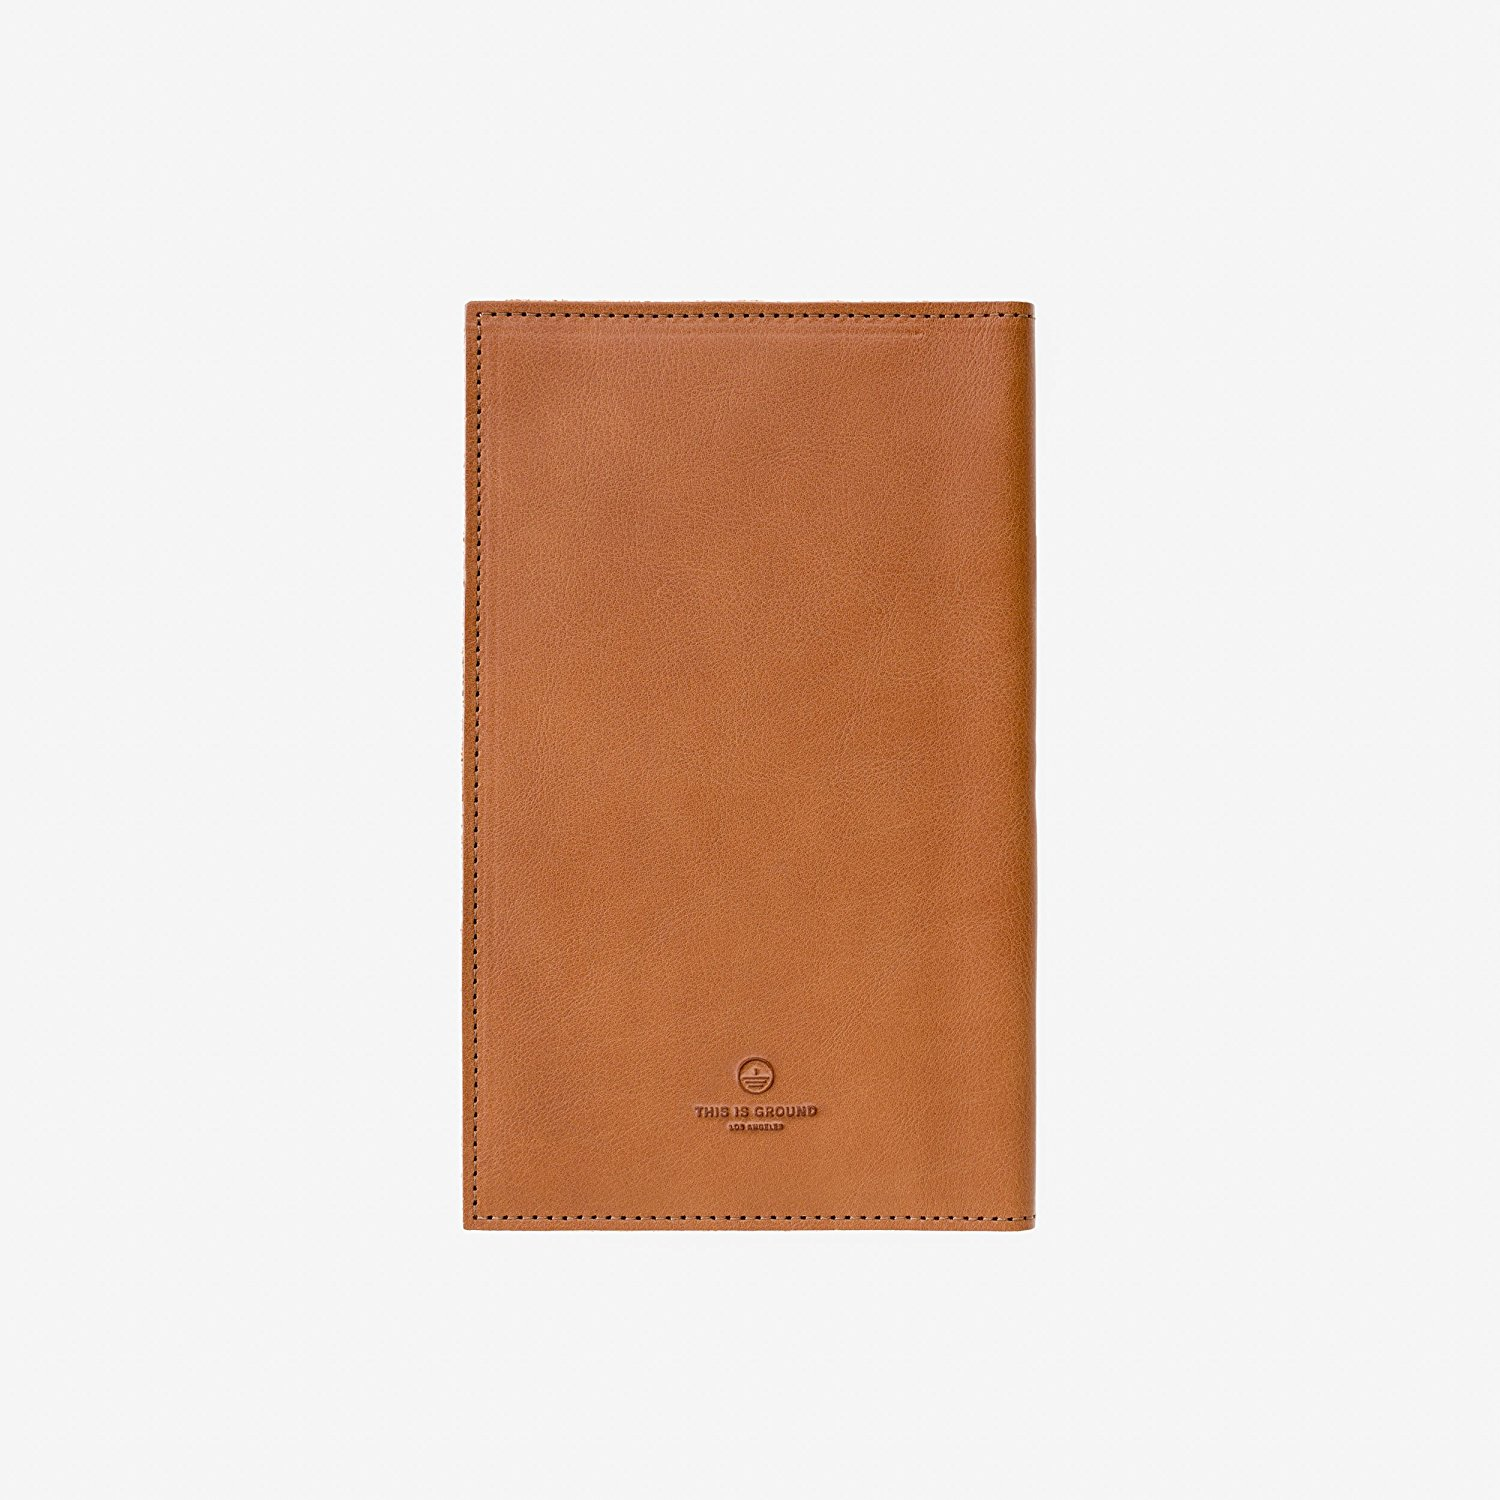 Medium:100% Real Italian Leather Notebook Cover – holds Smartphone & Notebook by This Is Ground